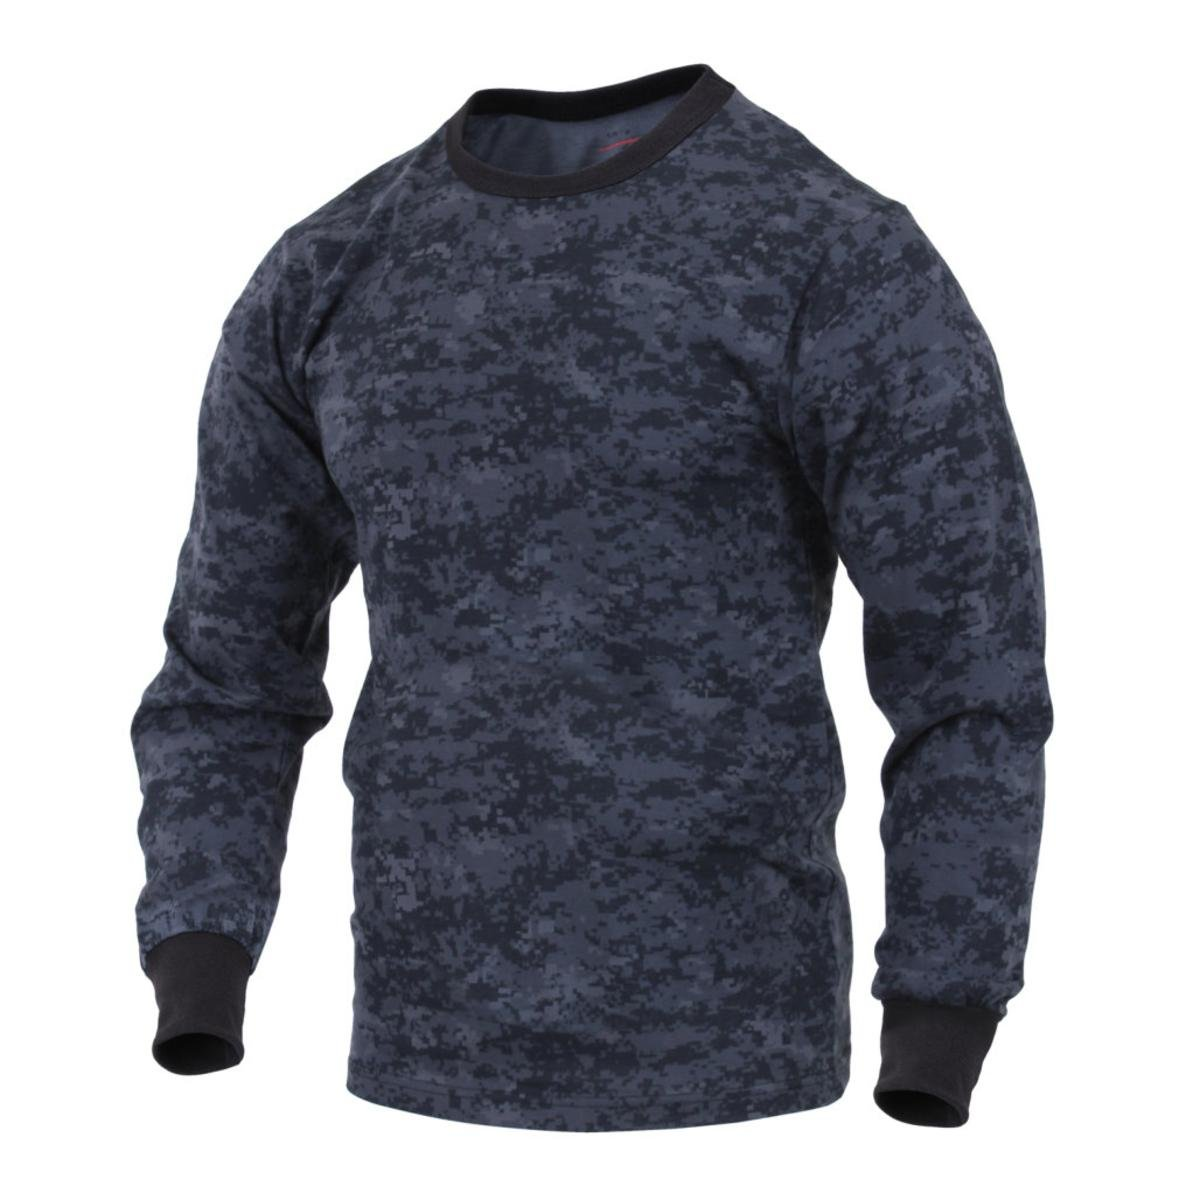 Rothco Long Sleeve Digital T-Shirts, Midnight Digital Camo, X-Large 16308